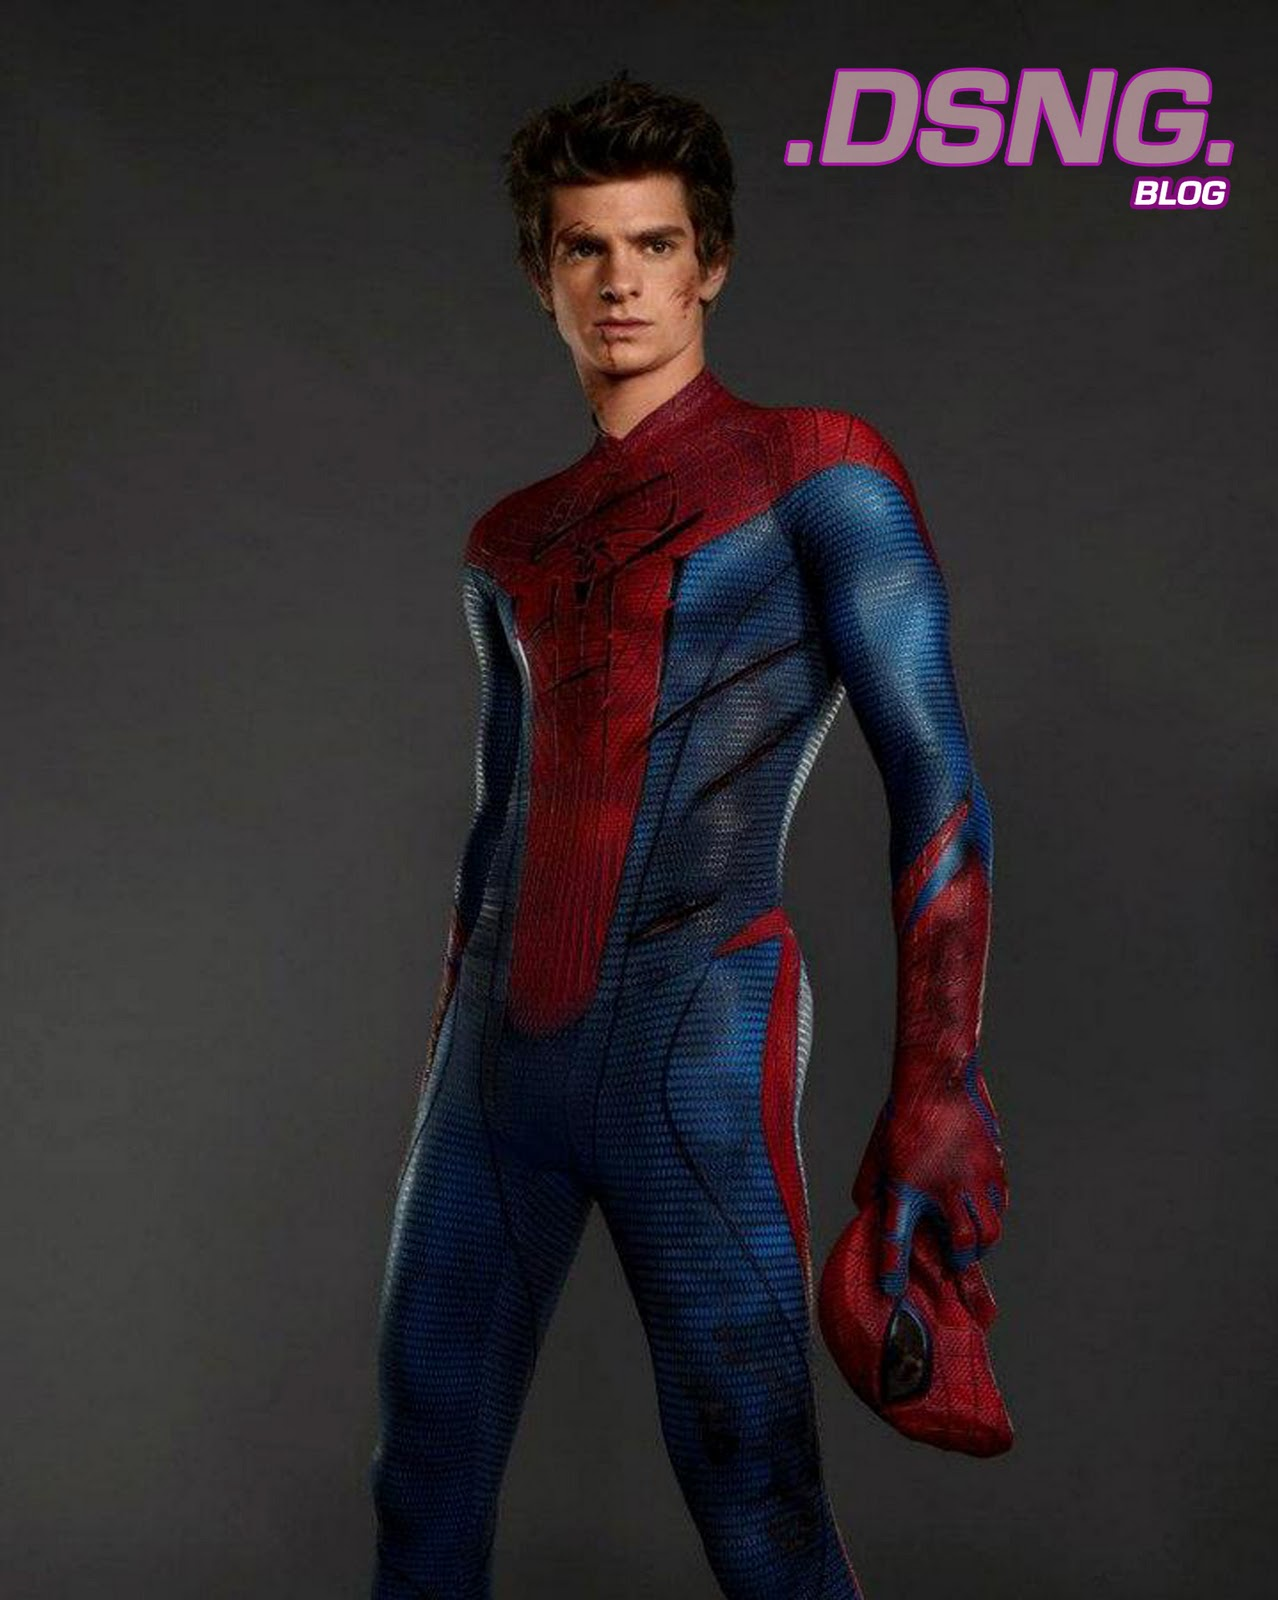 http://2.bp.blogspot.com/-UzriNeE7WQM/TyYwfqRTH0I/AAAAAAAADgs/qQg5dLcifGo/s1600/Andrew+Garfield+amazing+spider-man+spiderman+4+2012+2013+marvel+official+movie+poster+unmasked.jpg